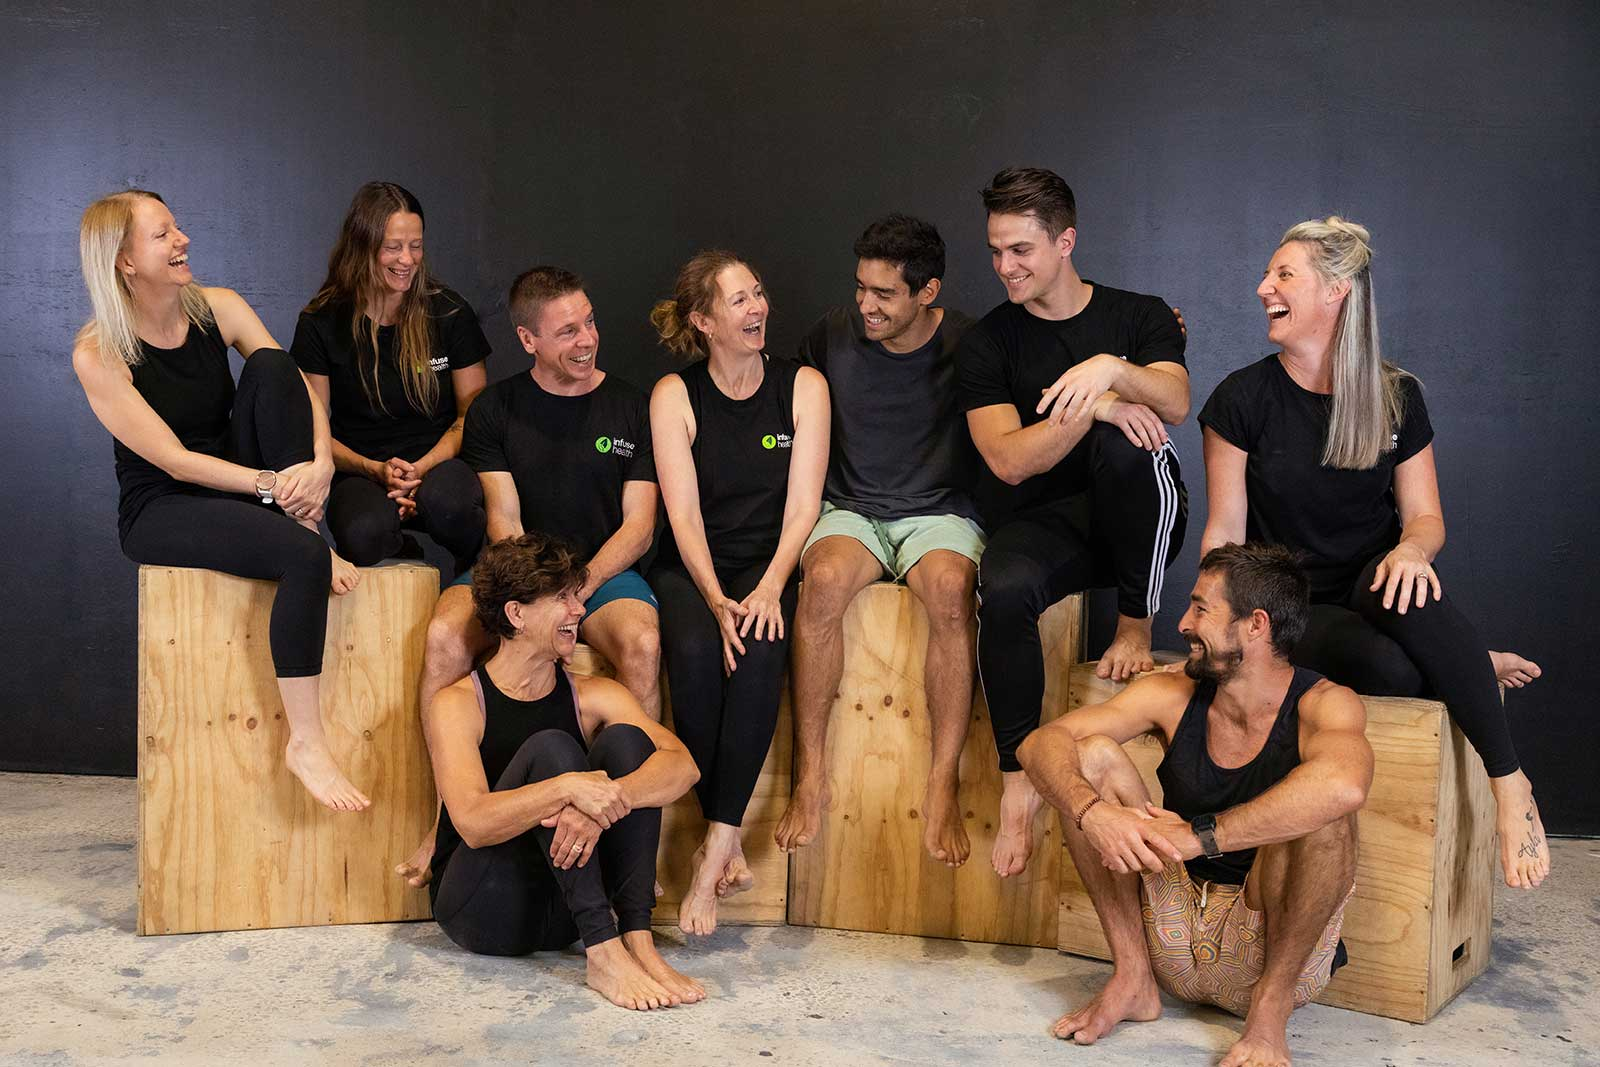 a group photograph of 9 people sat on boxes or the floor, they are all looking at one another and smiling or laughing